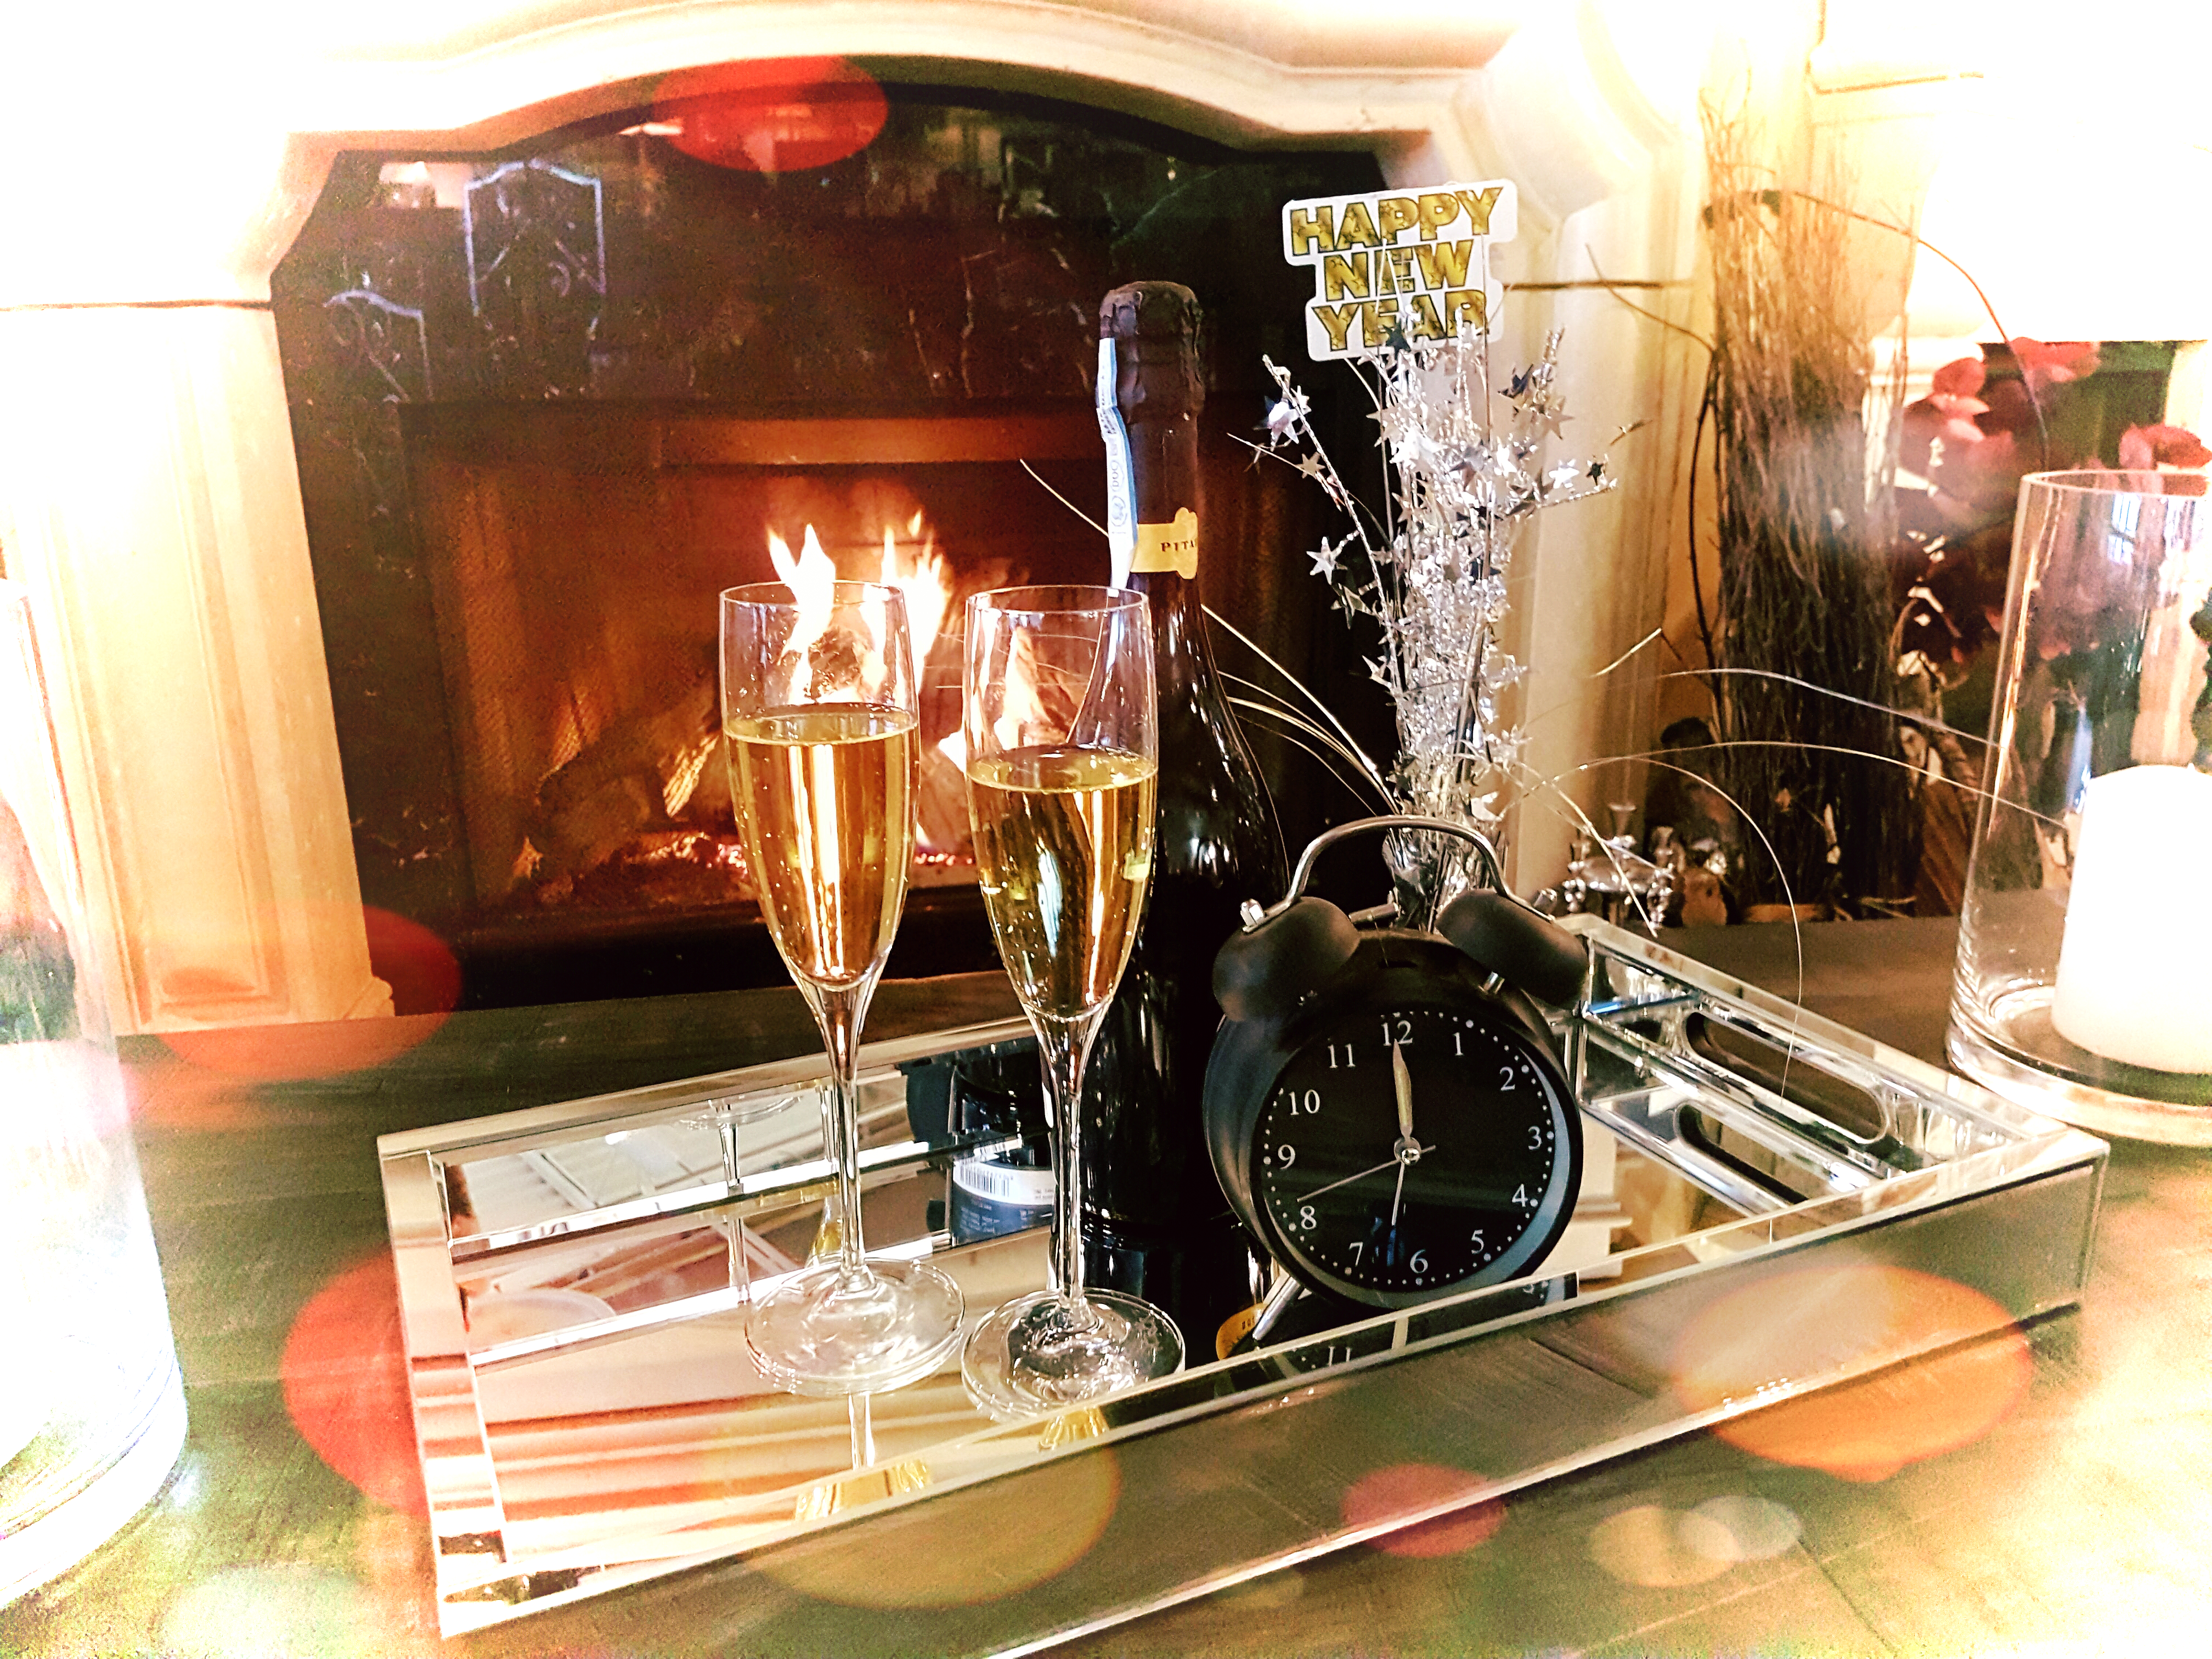 happy new years from hearth manor fireplaces!